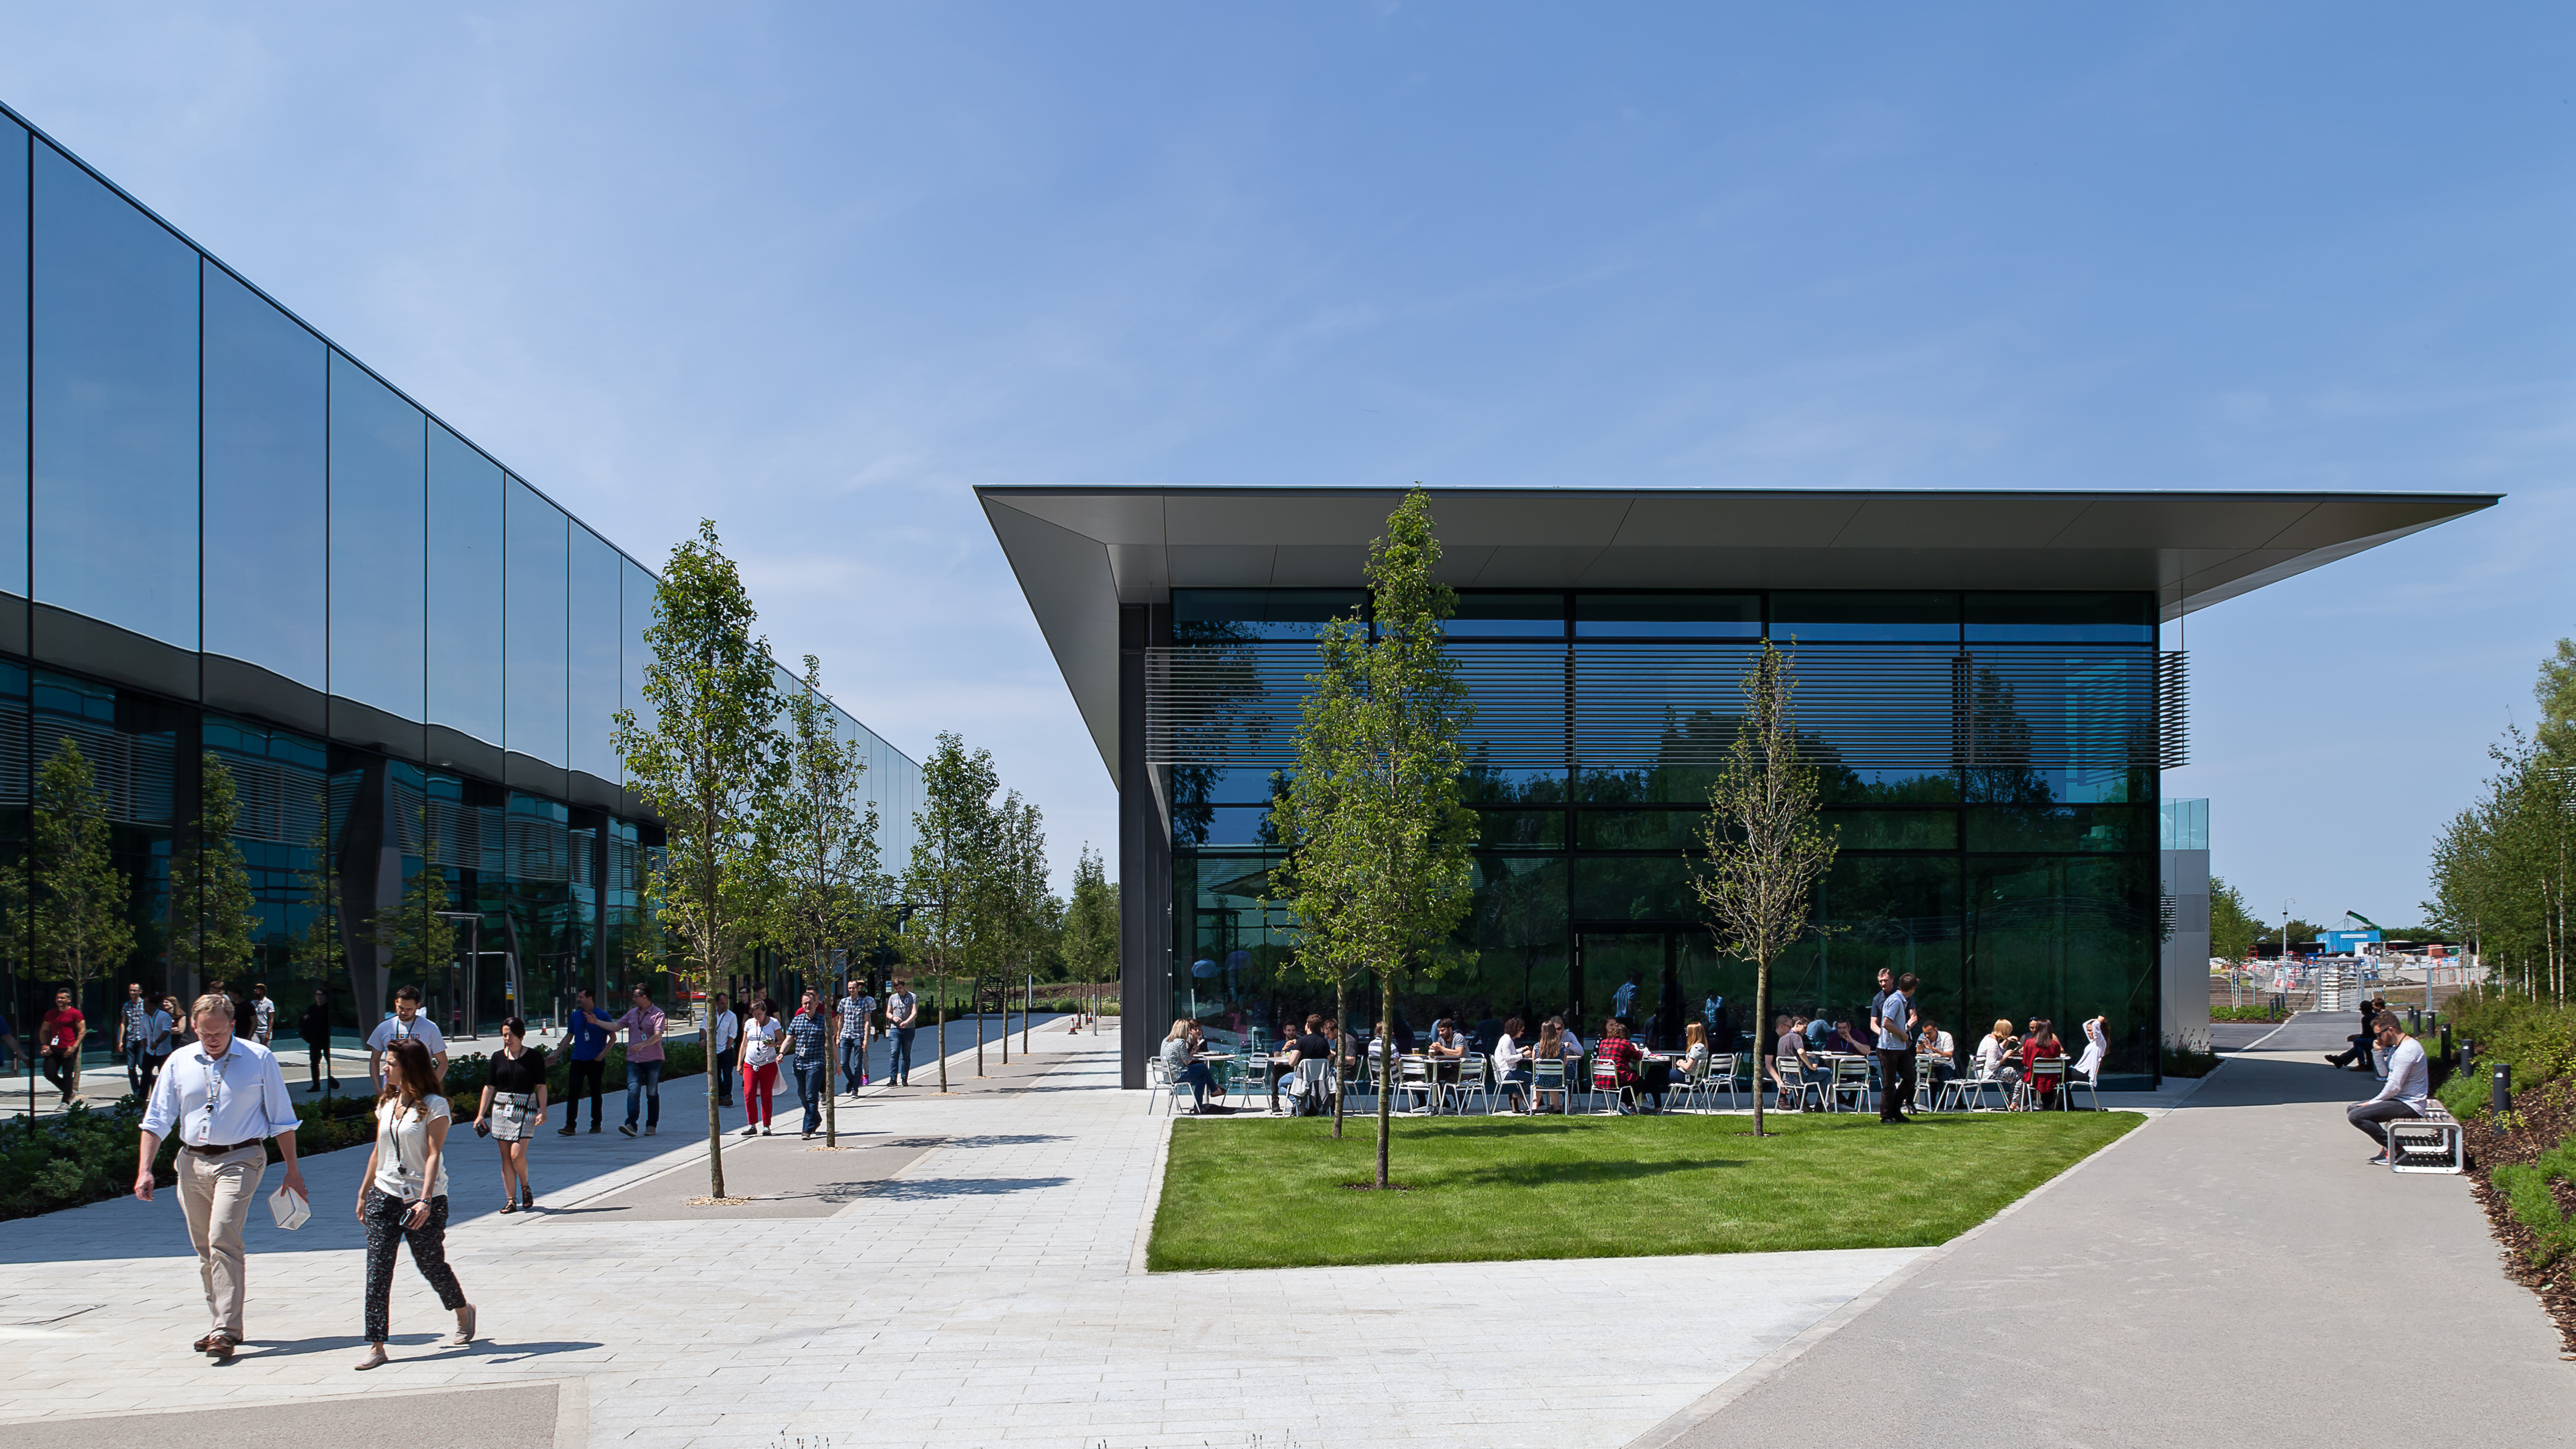 Dyson has already outgrown its existing campus in Malmesbury in England's West Country.